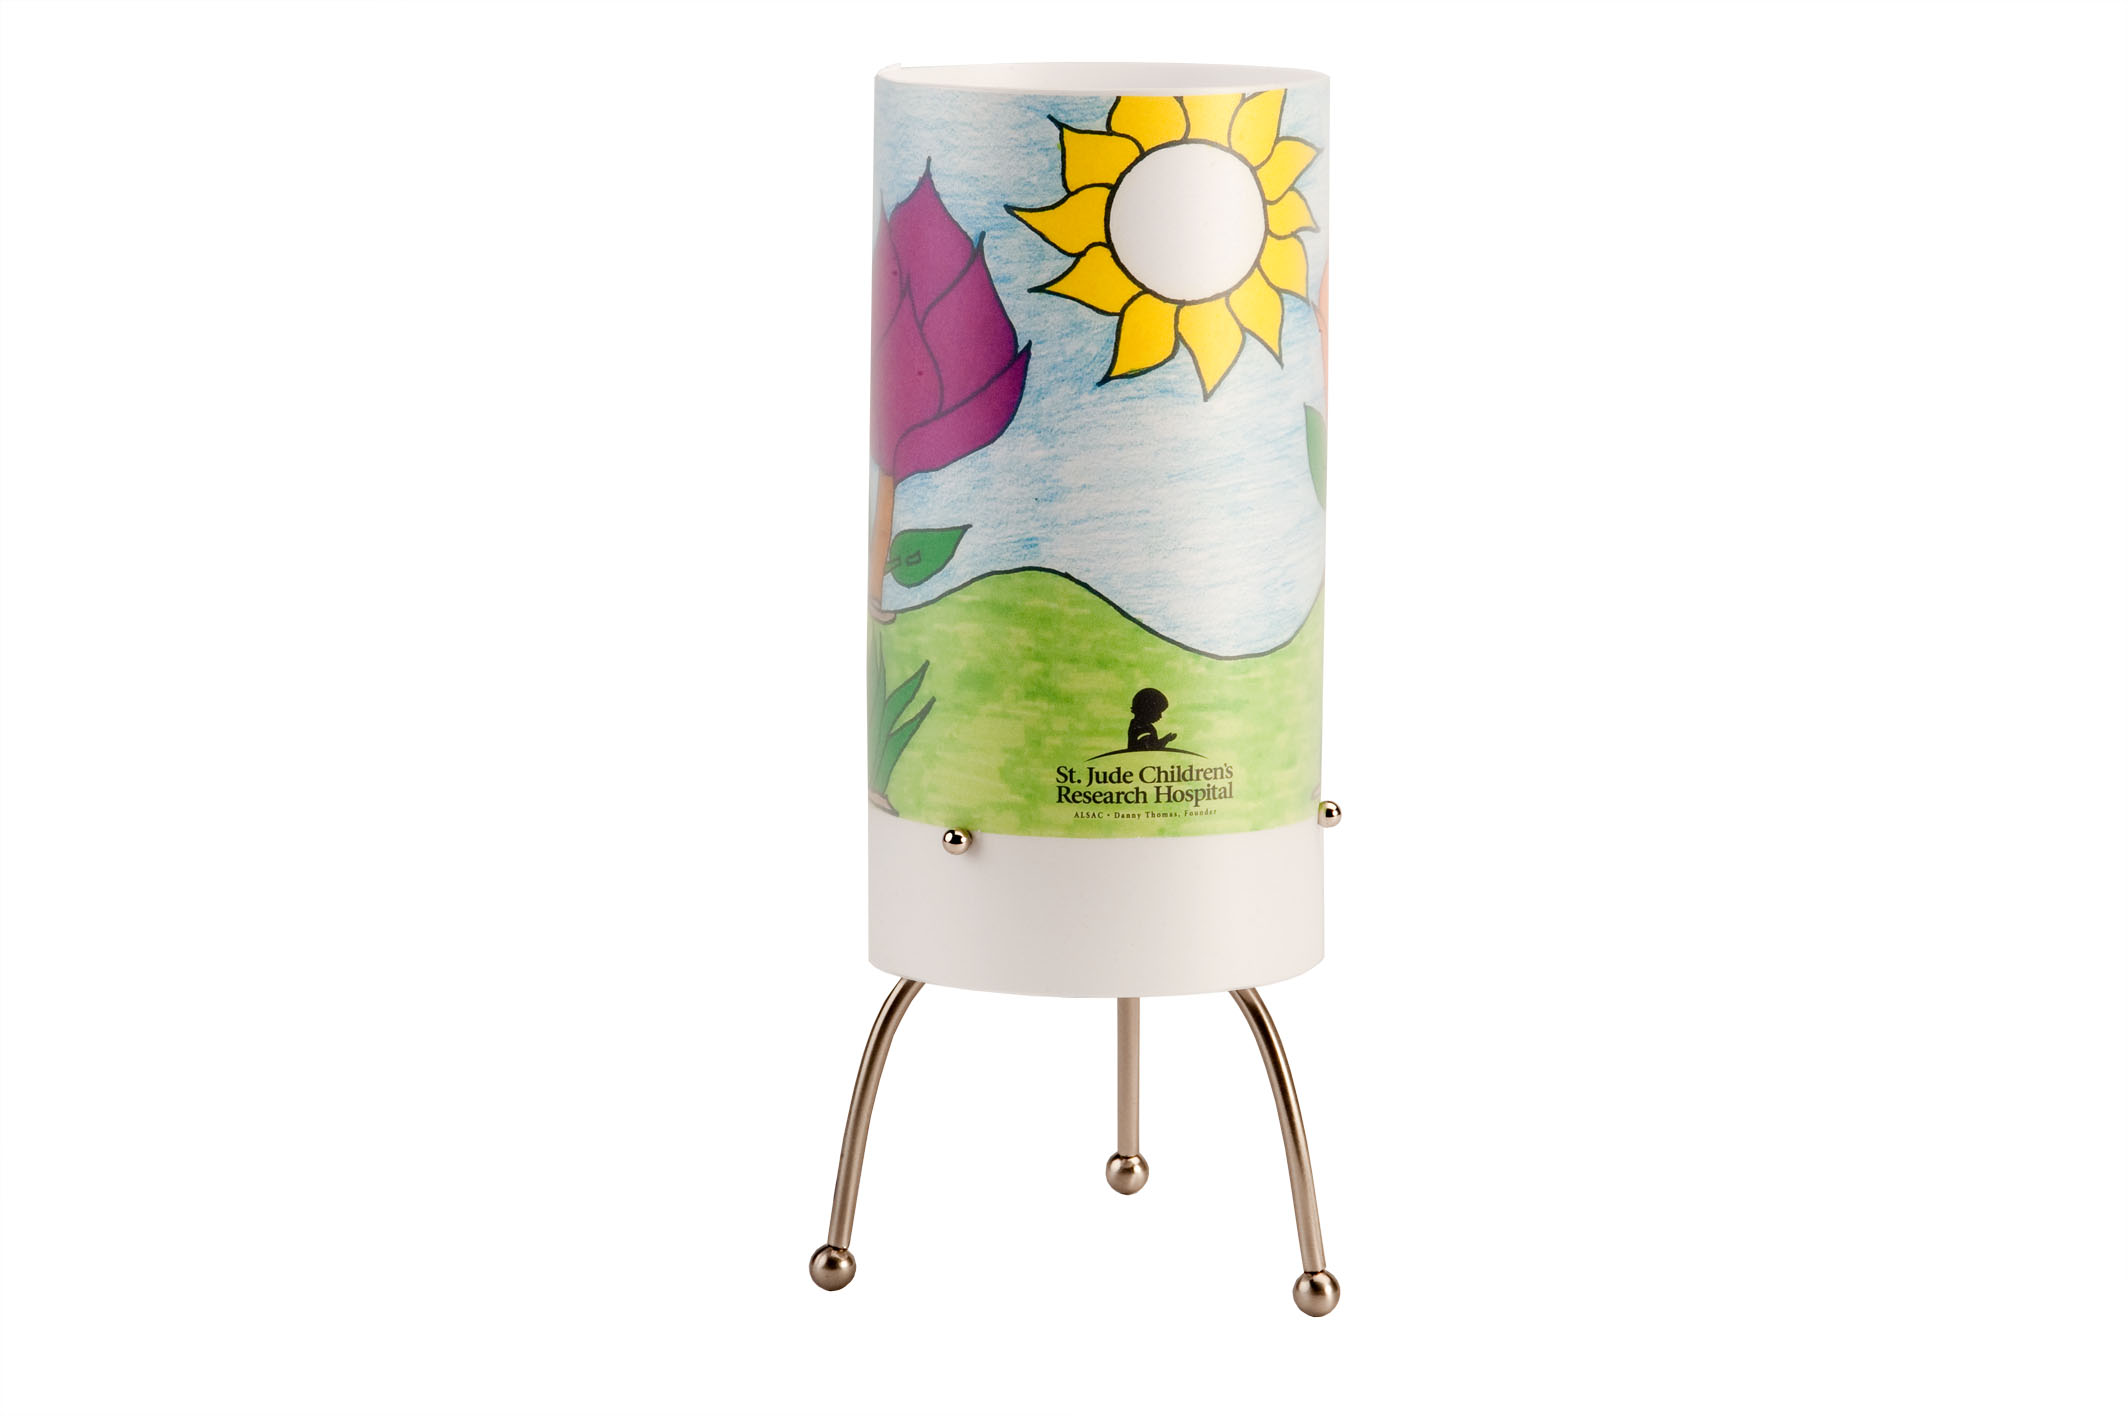 Design Your Own Lamp st. jude children's research hospital gifts that benefit kids in need